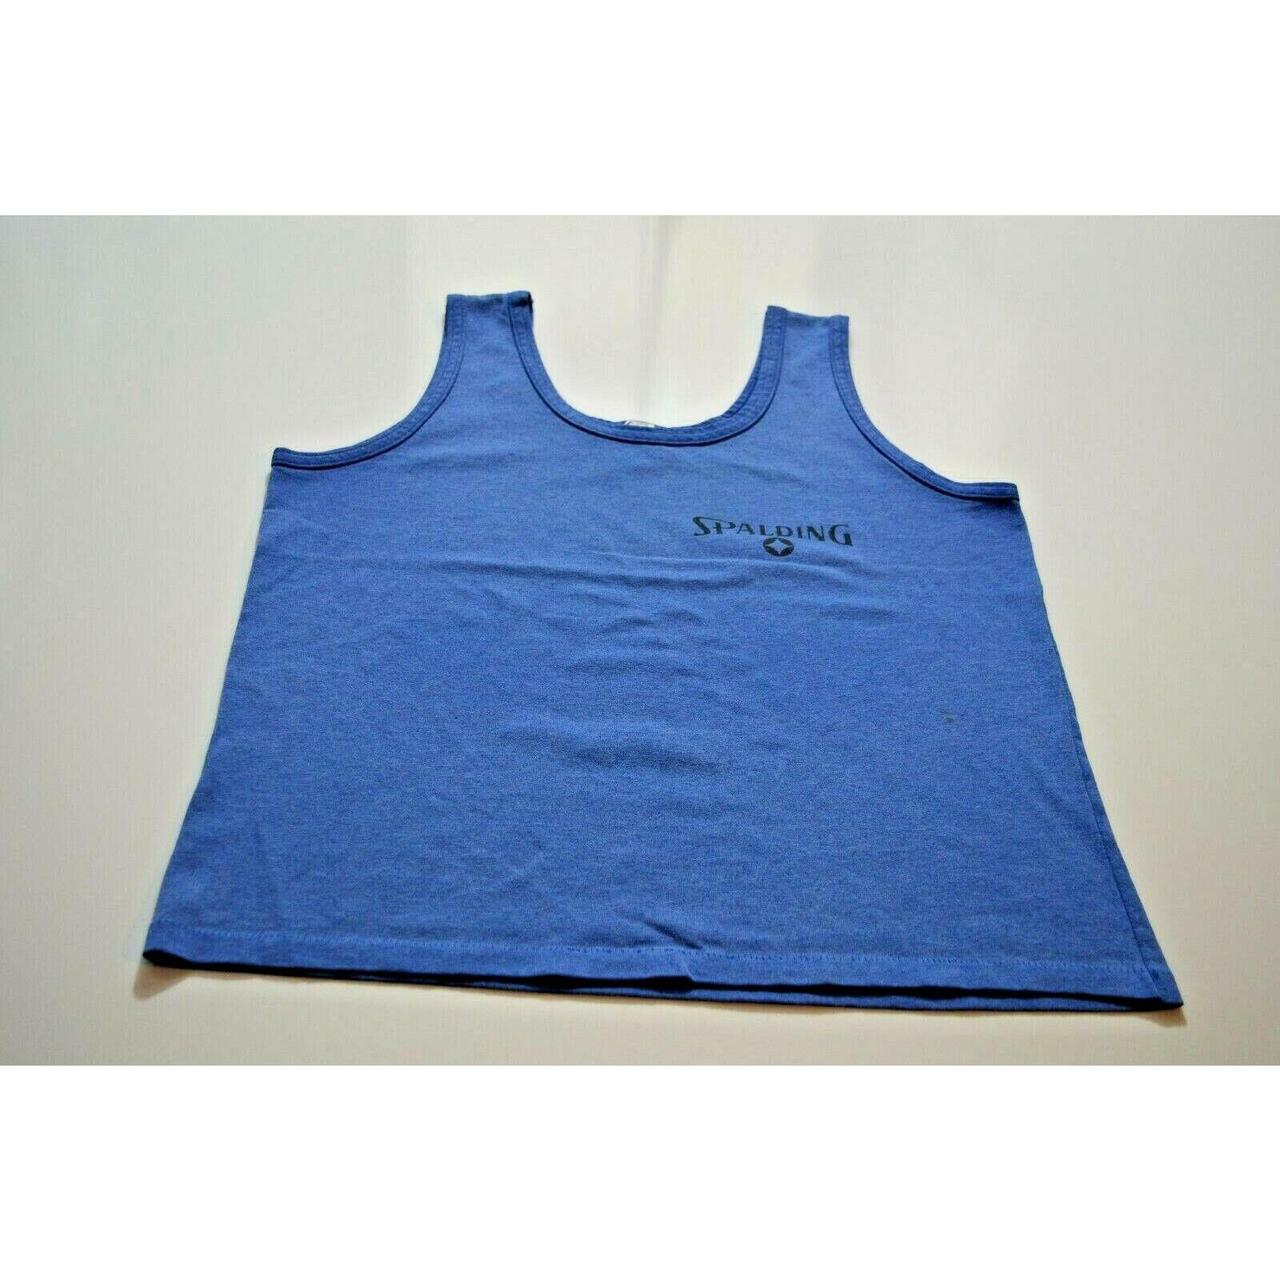 Product Image 1 - Vintage 90s Spalding Tank Top